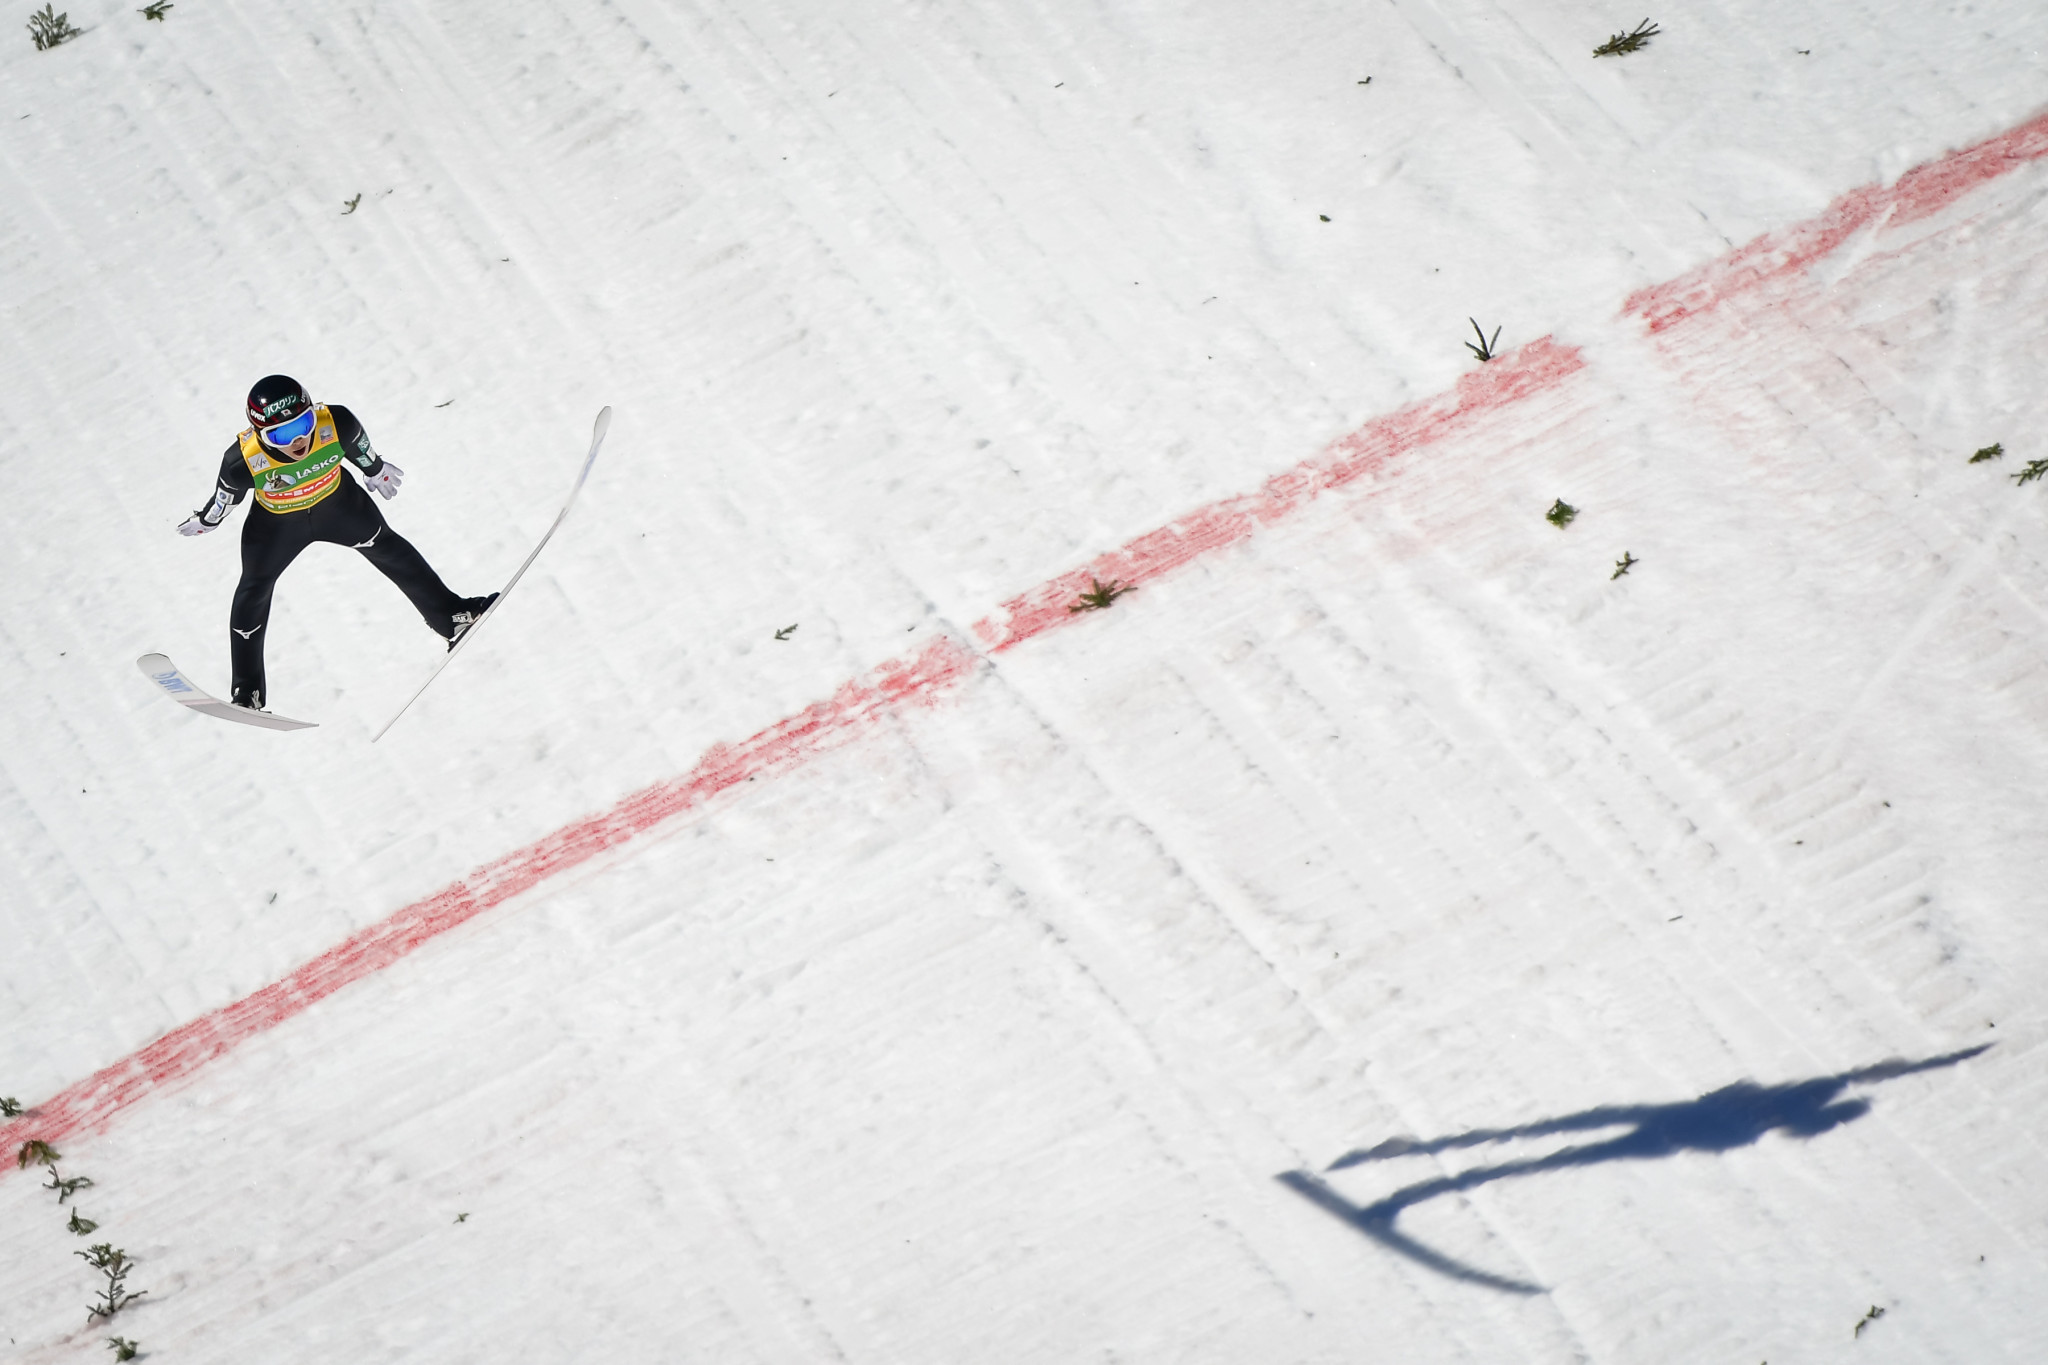 Planica 2023 organisers praised for dealing with COVID-19 challenges